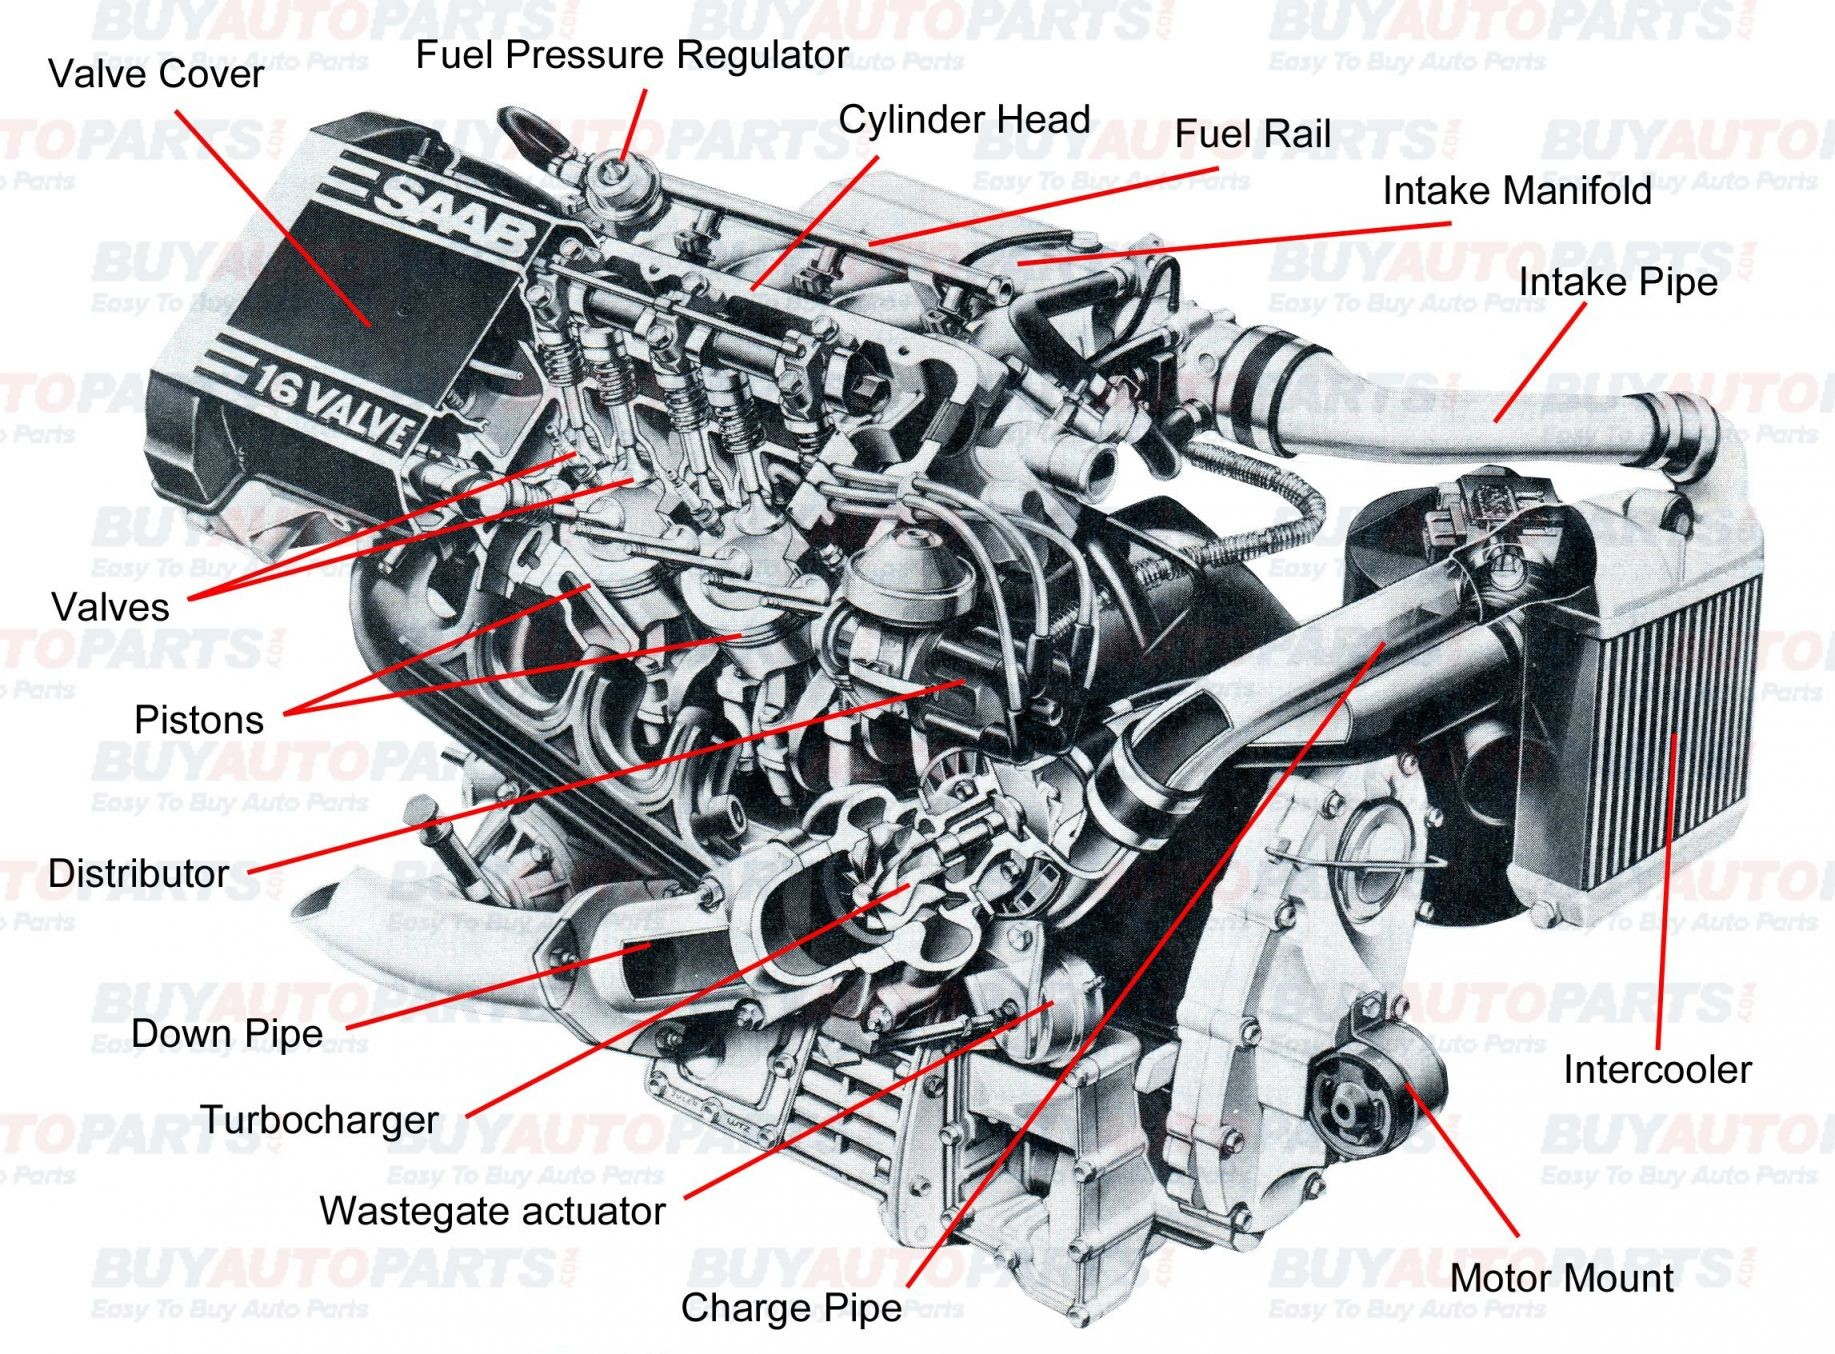 Ion Engine Diagram Wiring Library Isuzu I 370 Unique Internal Parts A Car Et65 Documentaries For Change Of